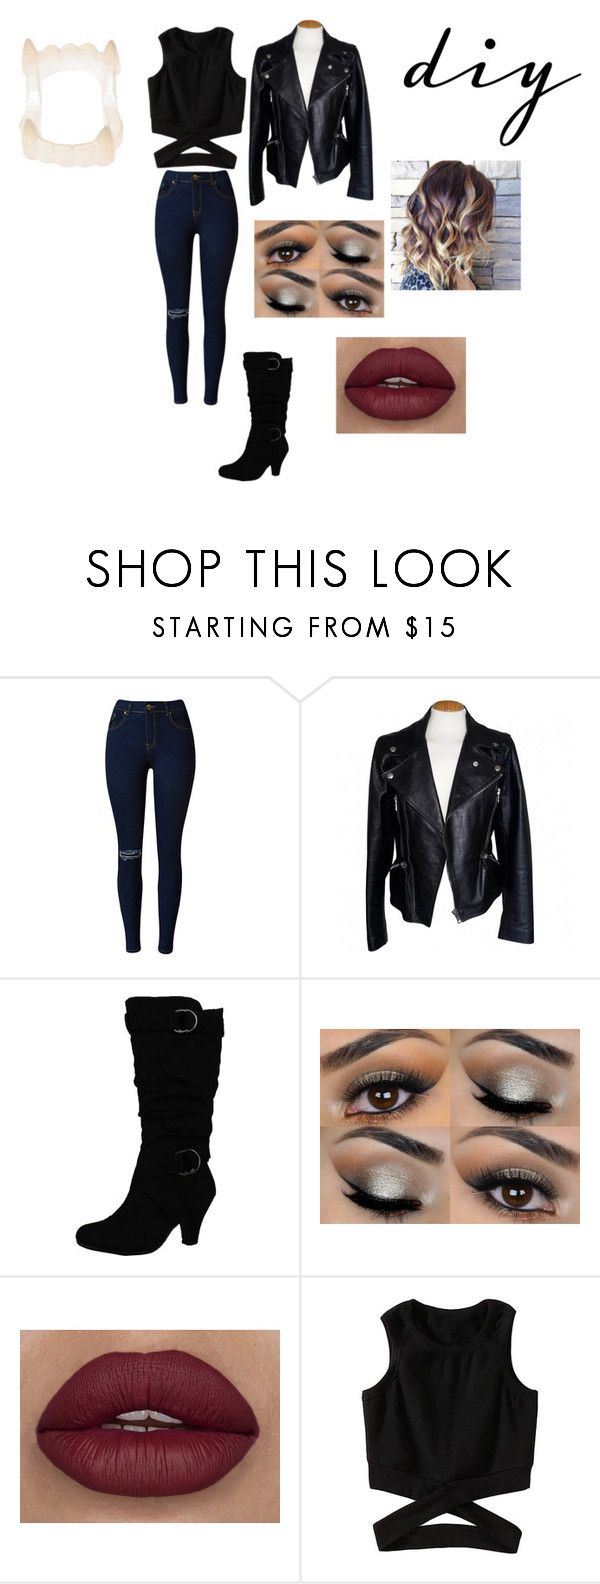 """diy vampire costume"" by allygagne ❤ liked on Polyvore featuring Alexander McQueen, halloweencostume and DIYHalloween"